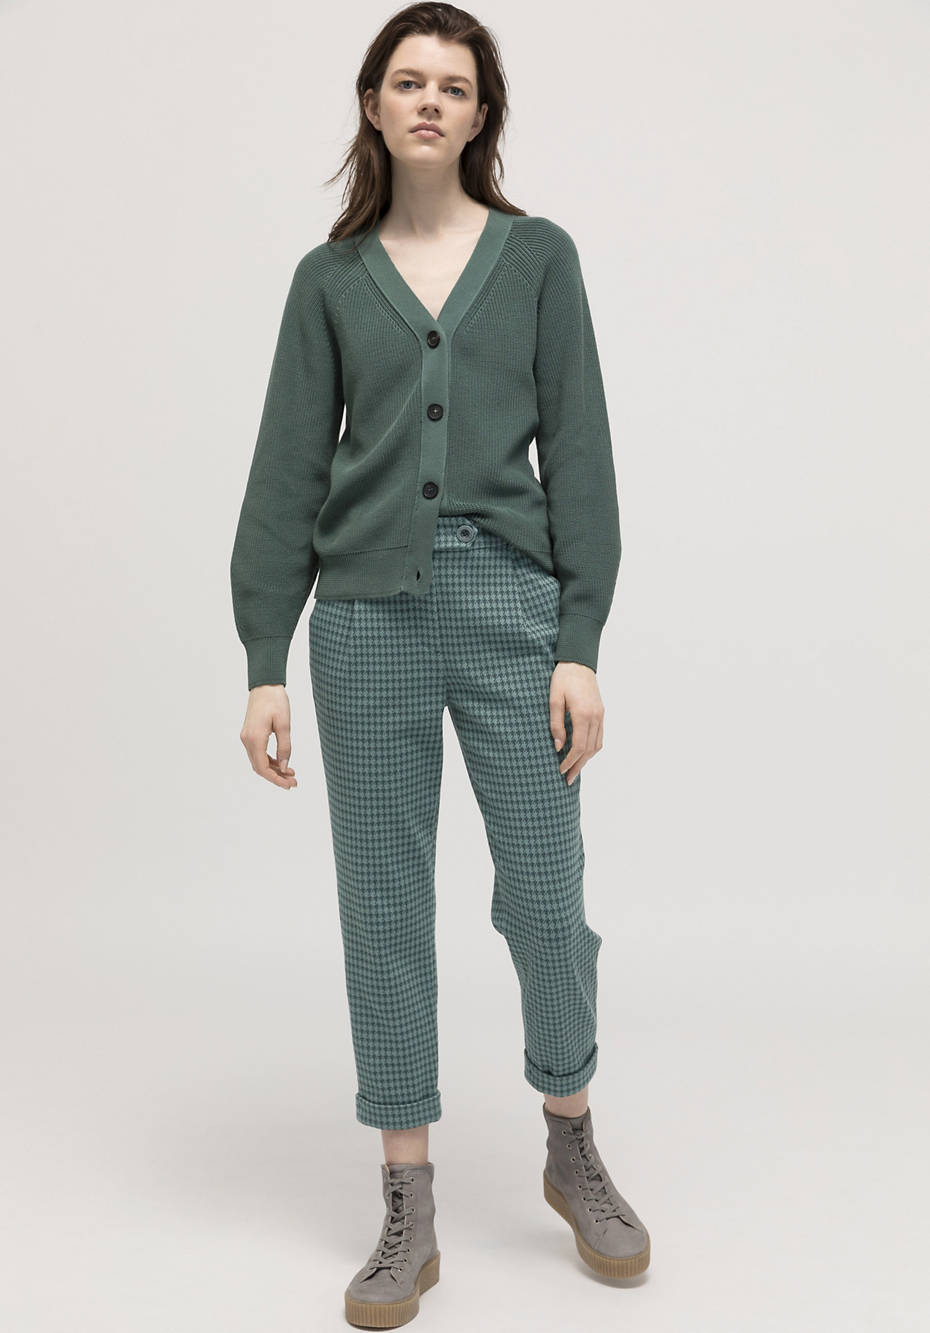 Checkered jersey trousers made of organic cotton